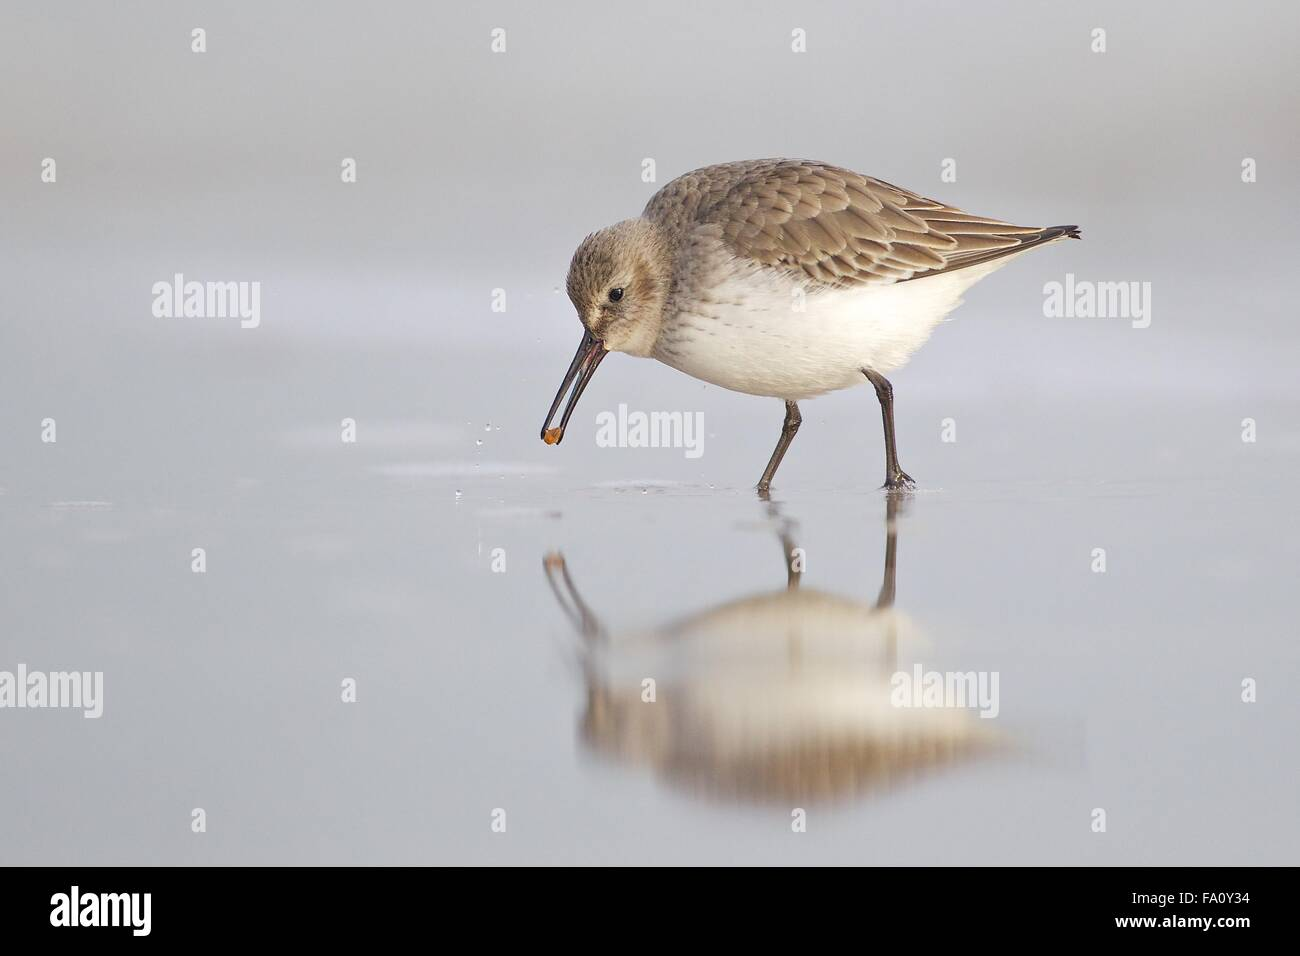 Dunlin - Calidris alpina - juvenile, first winter plumage feeding along the tide line. Lade beach, Dungeness, Kent Stock Photo